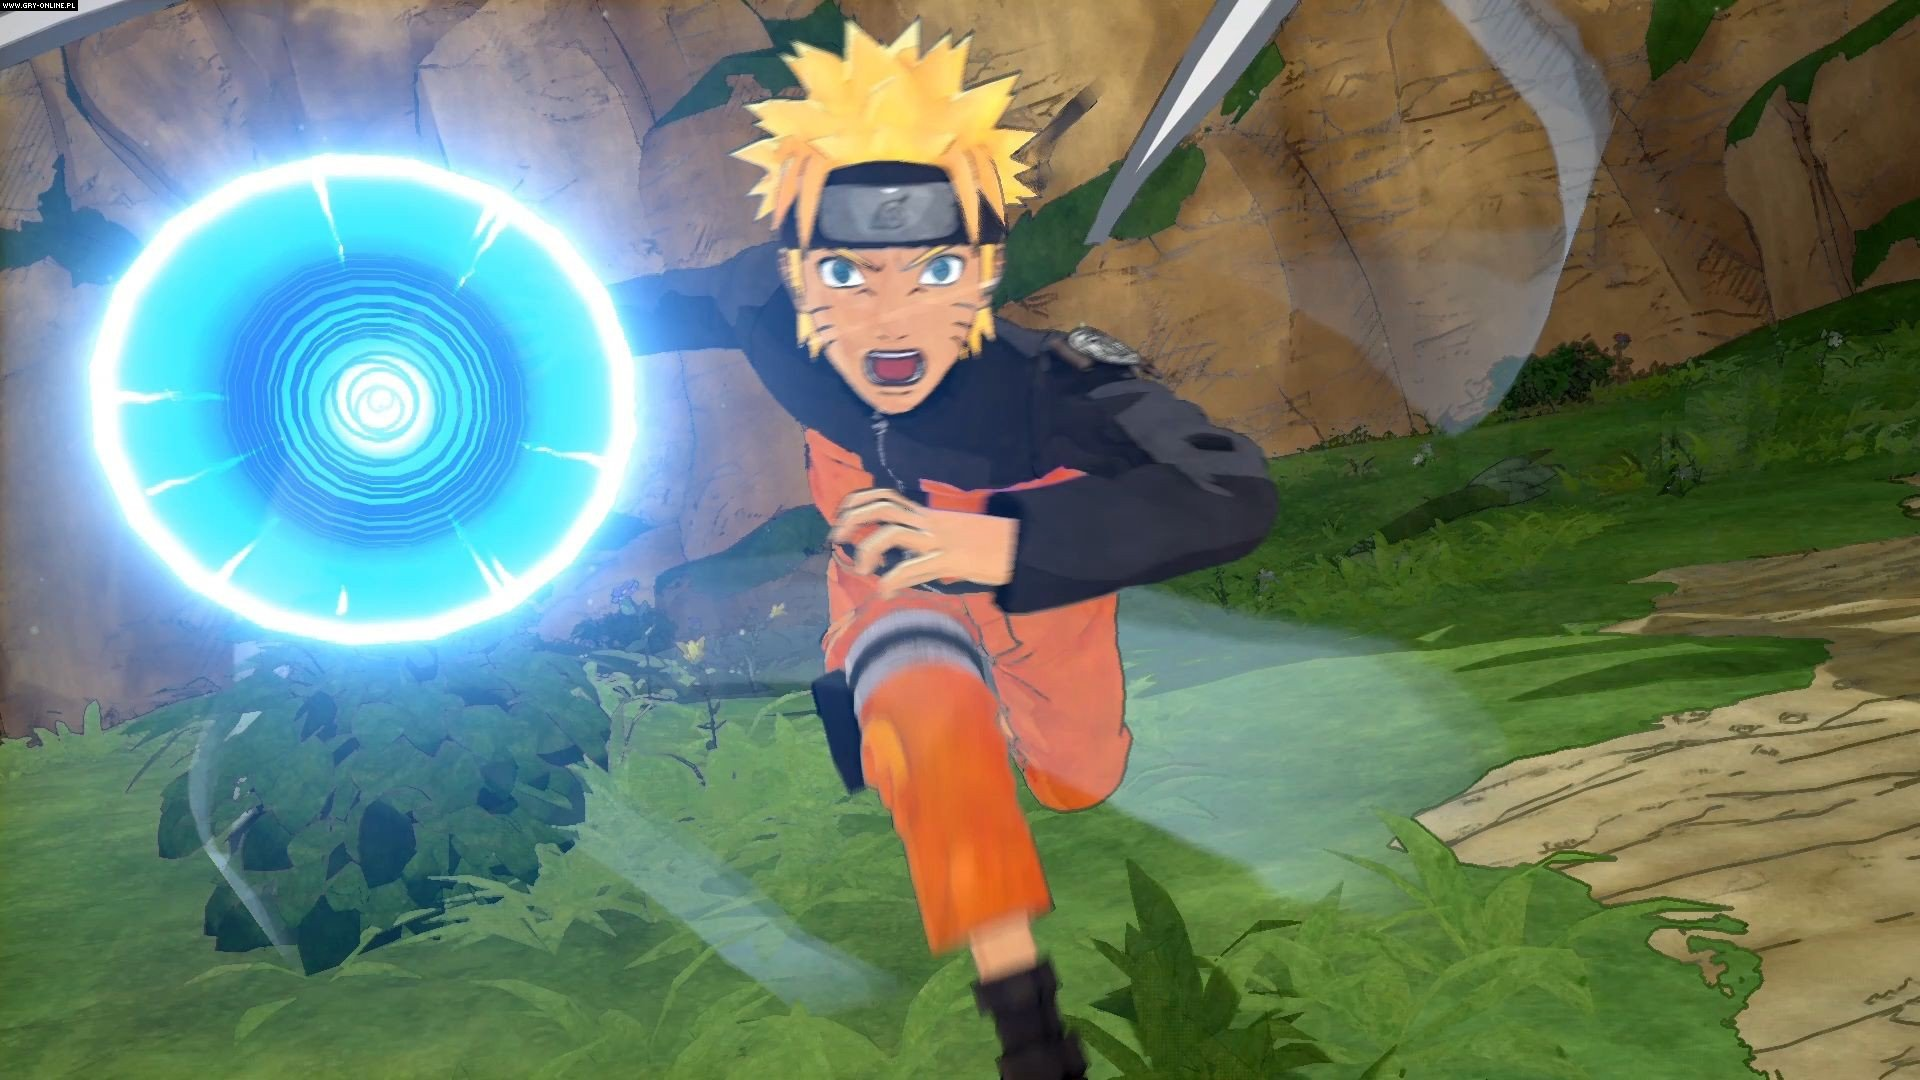 Naruto to Boruto: Shinobi Striker PC, PS4, XONE Games Image 64/66, Soleil, Bandai Namco Entertainment